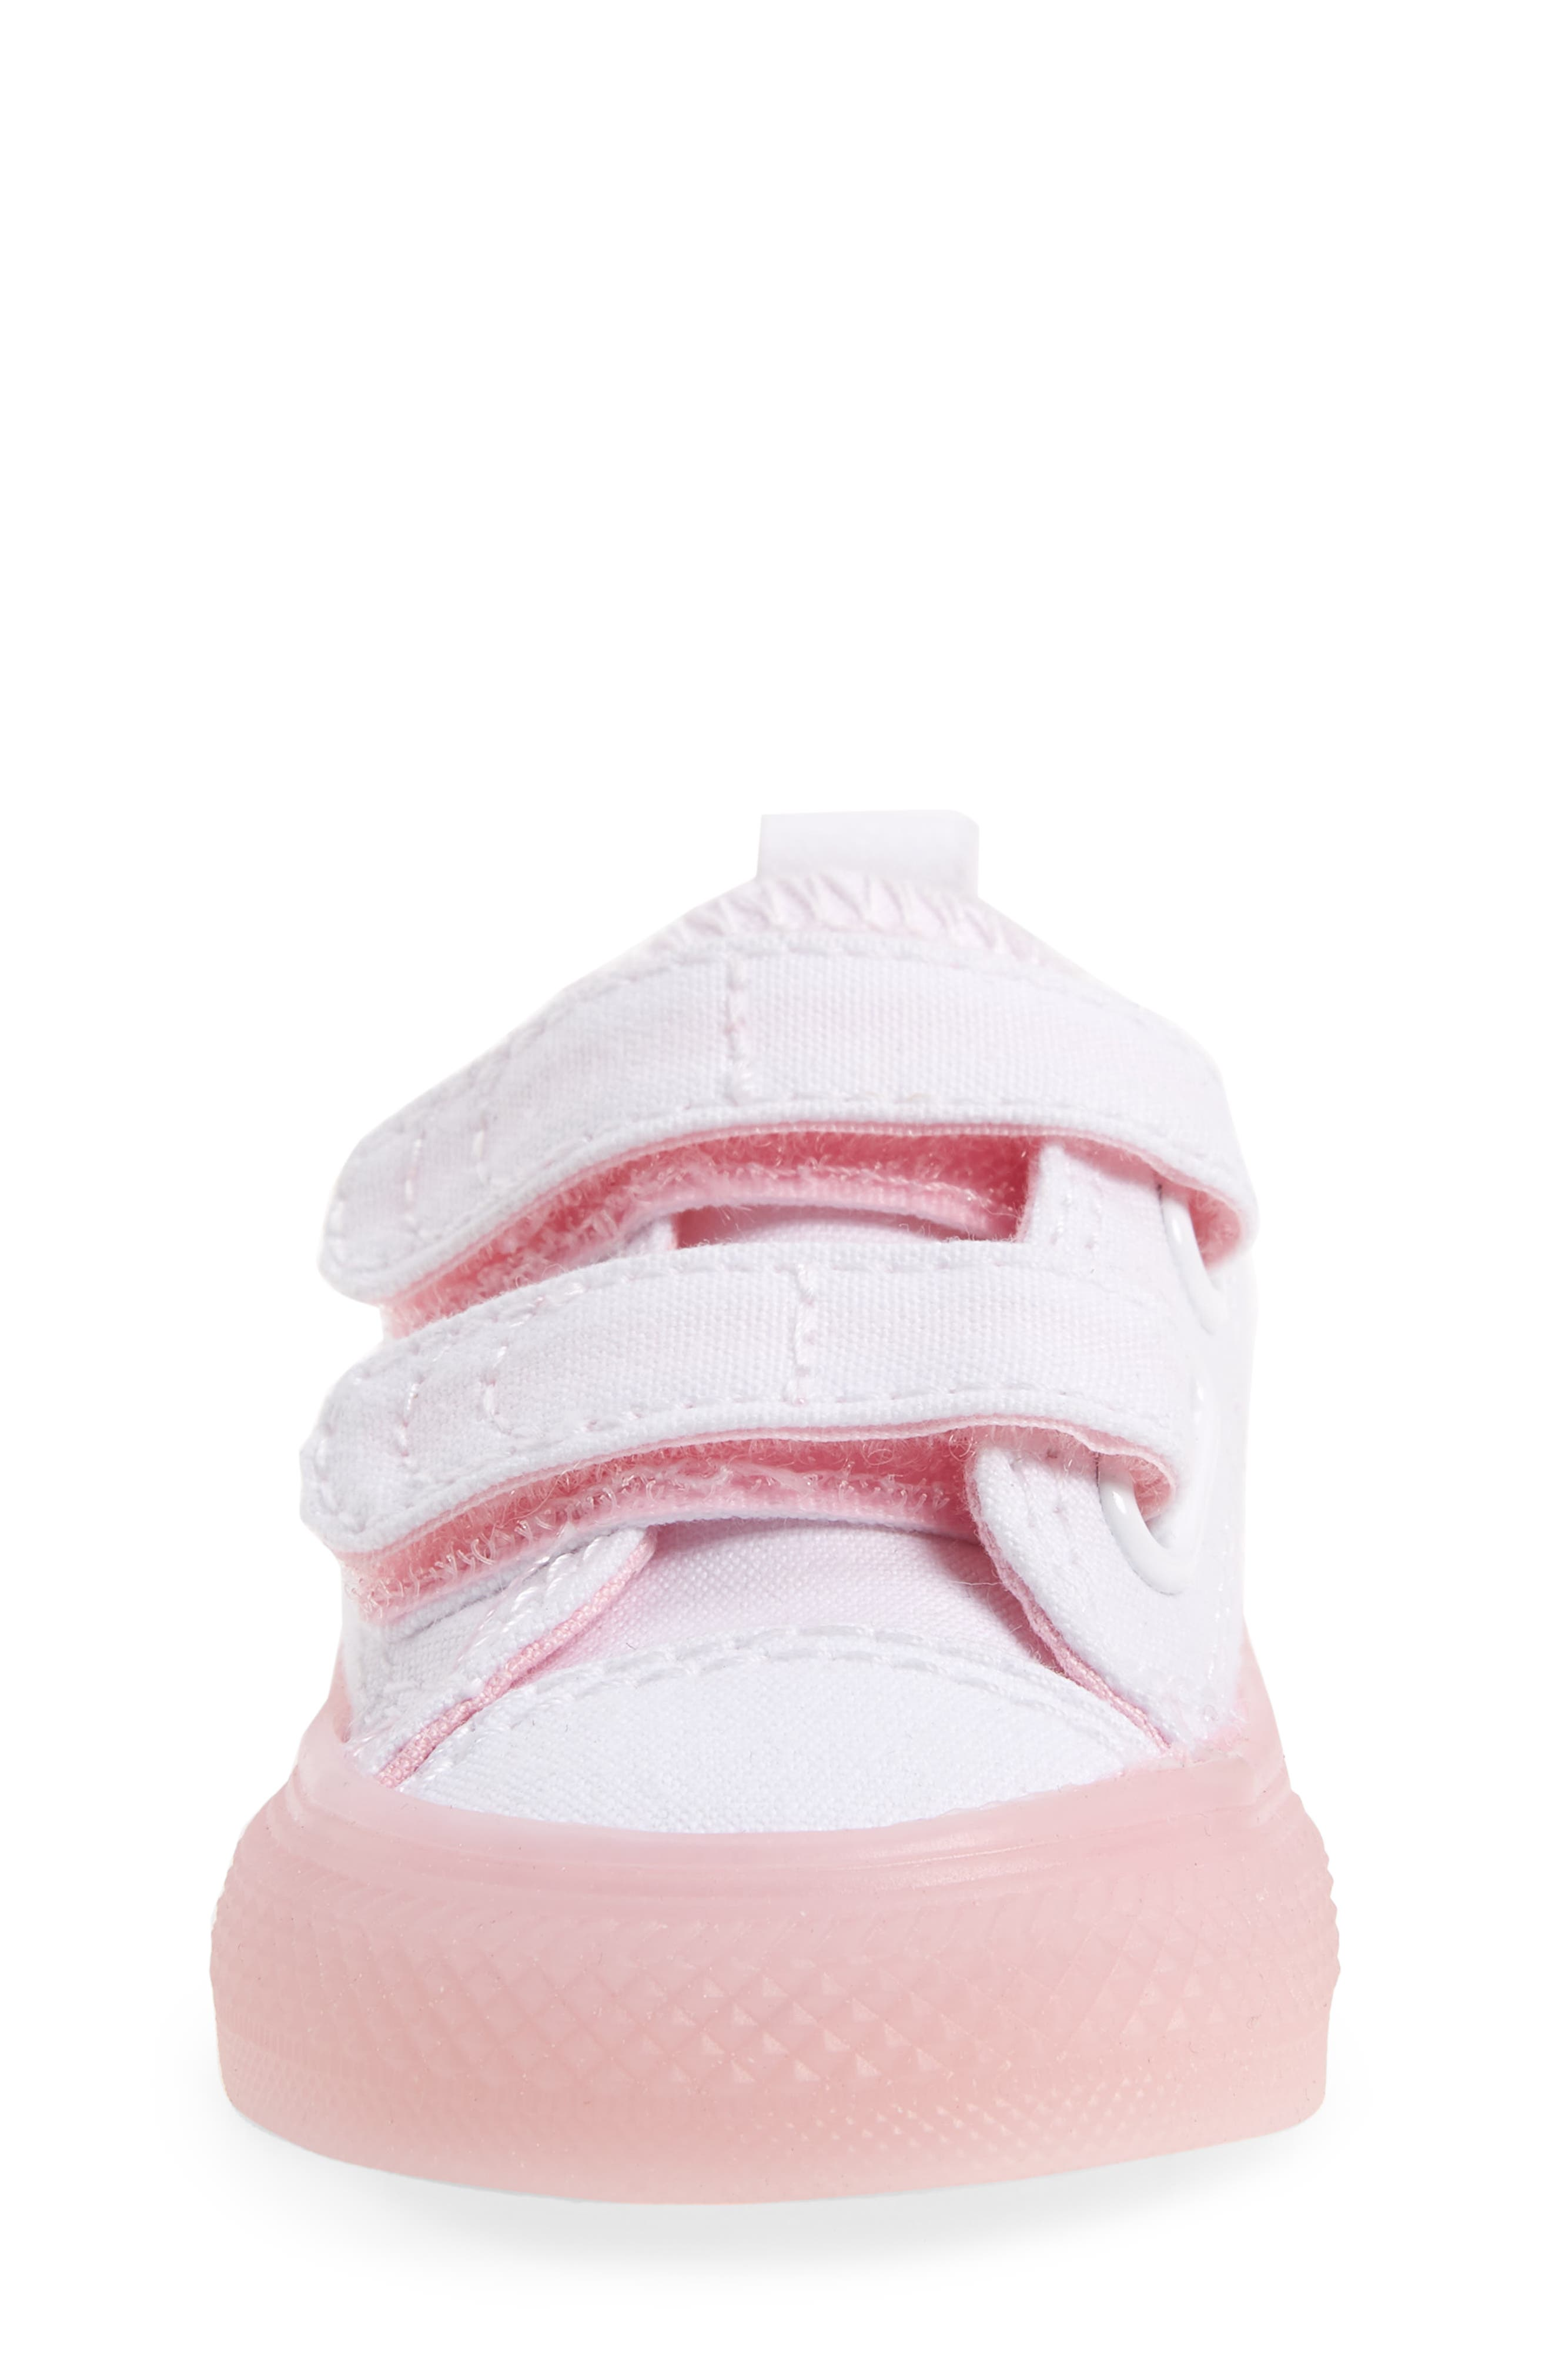 Chuck Taylor<sup>®</sup> All Star<sup>®</sup> Jelly Sneaker,                             Alternate thumbnail 4, color,                             White/ Cherry